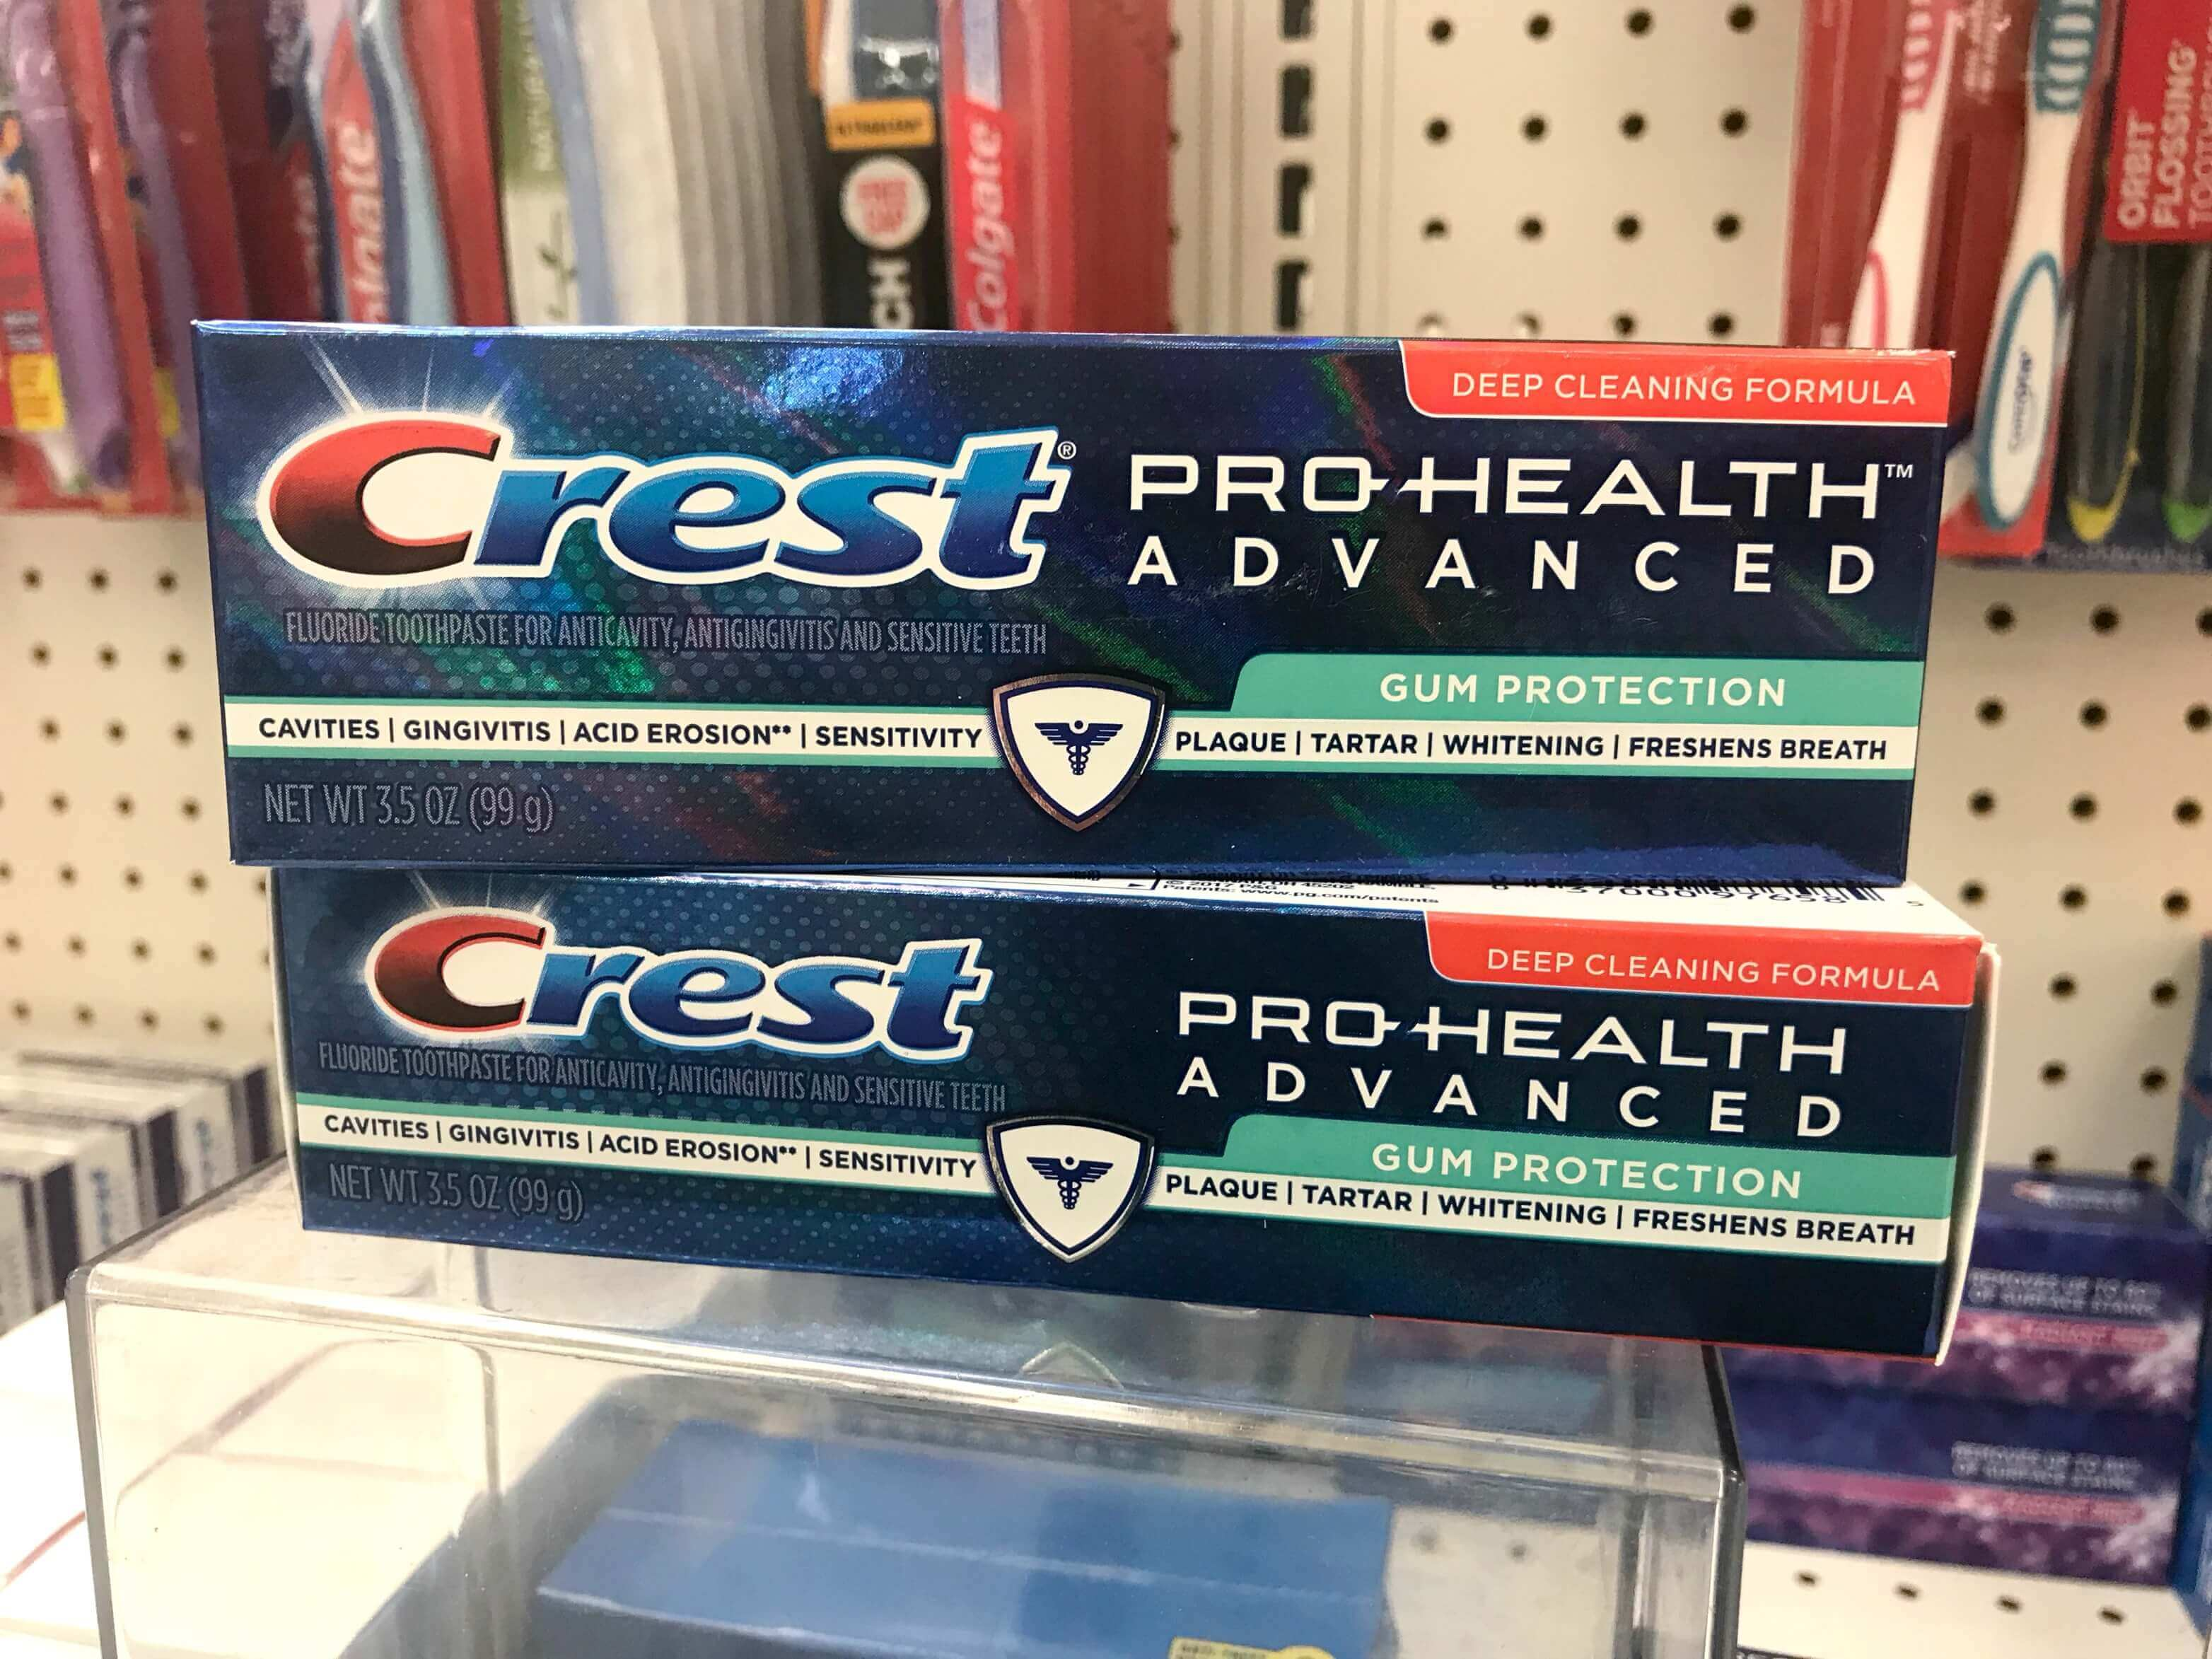 crest toothpaste rinse as low as free at walgreens just use your phone living rich with coupons